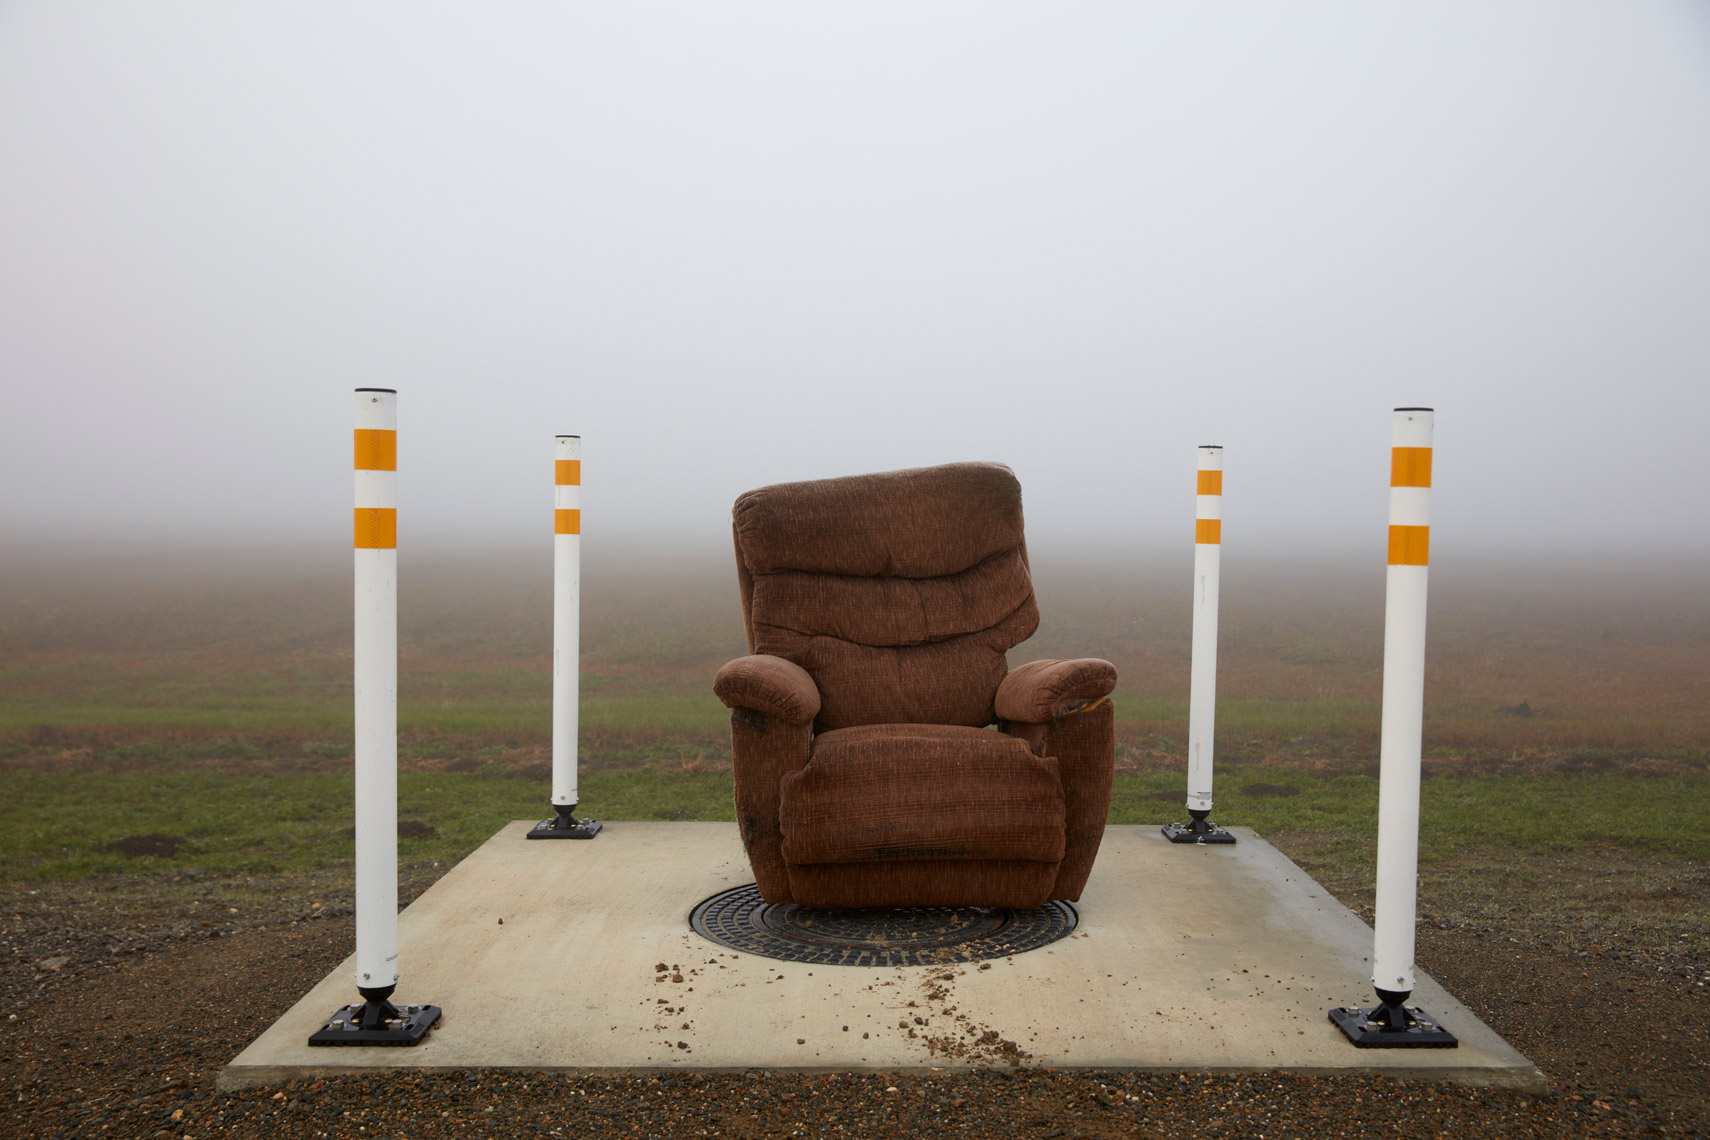 Brown Lounge Chair on Concrete Pad in the Fog